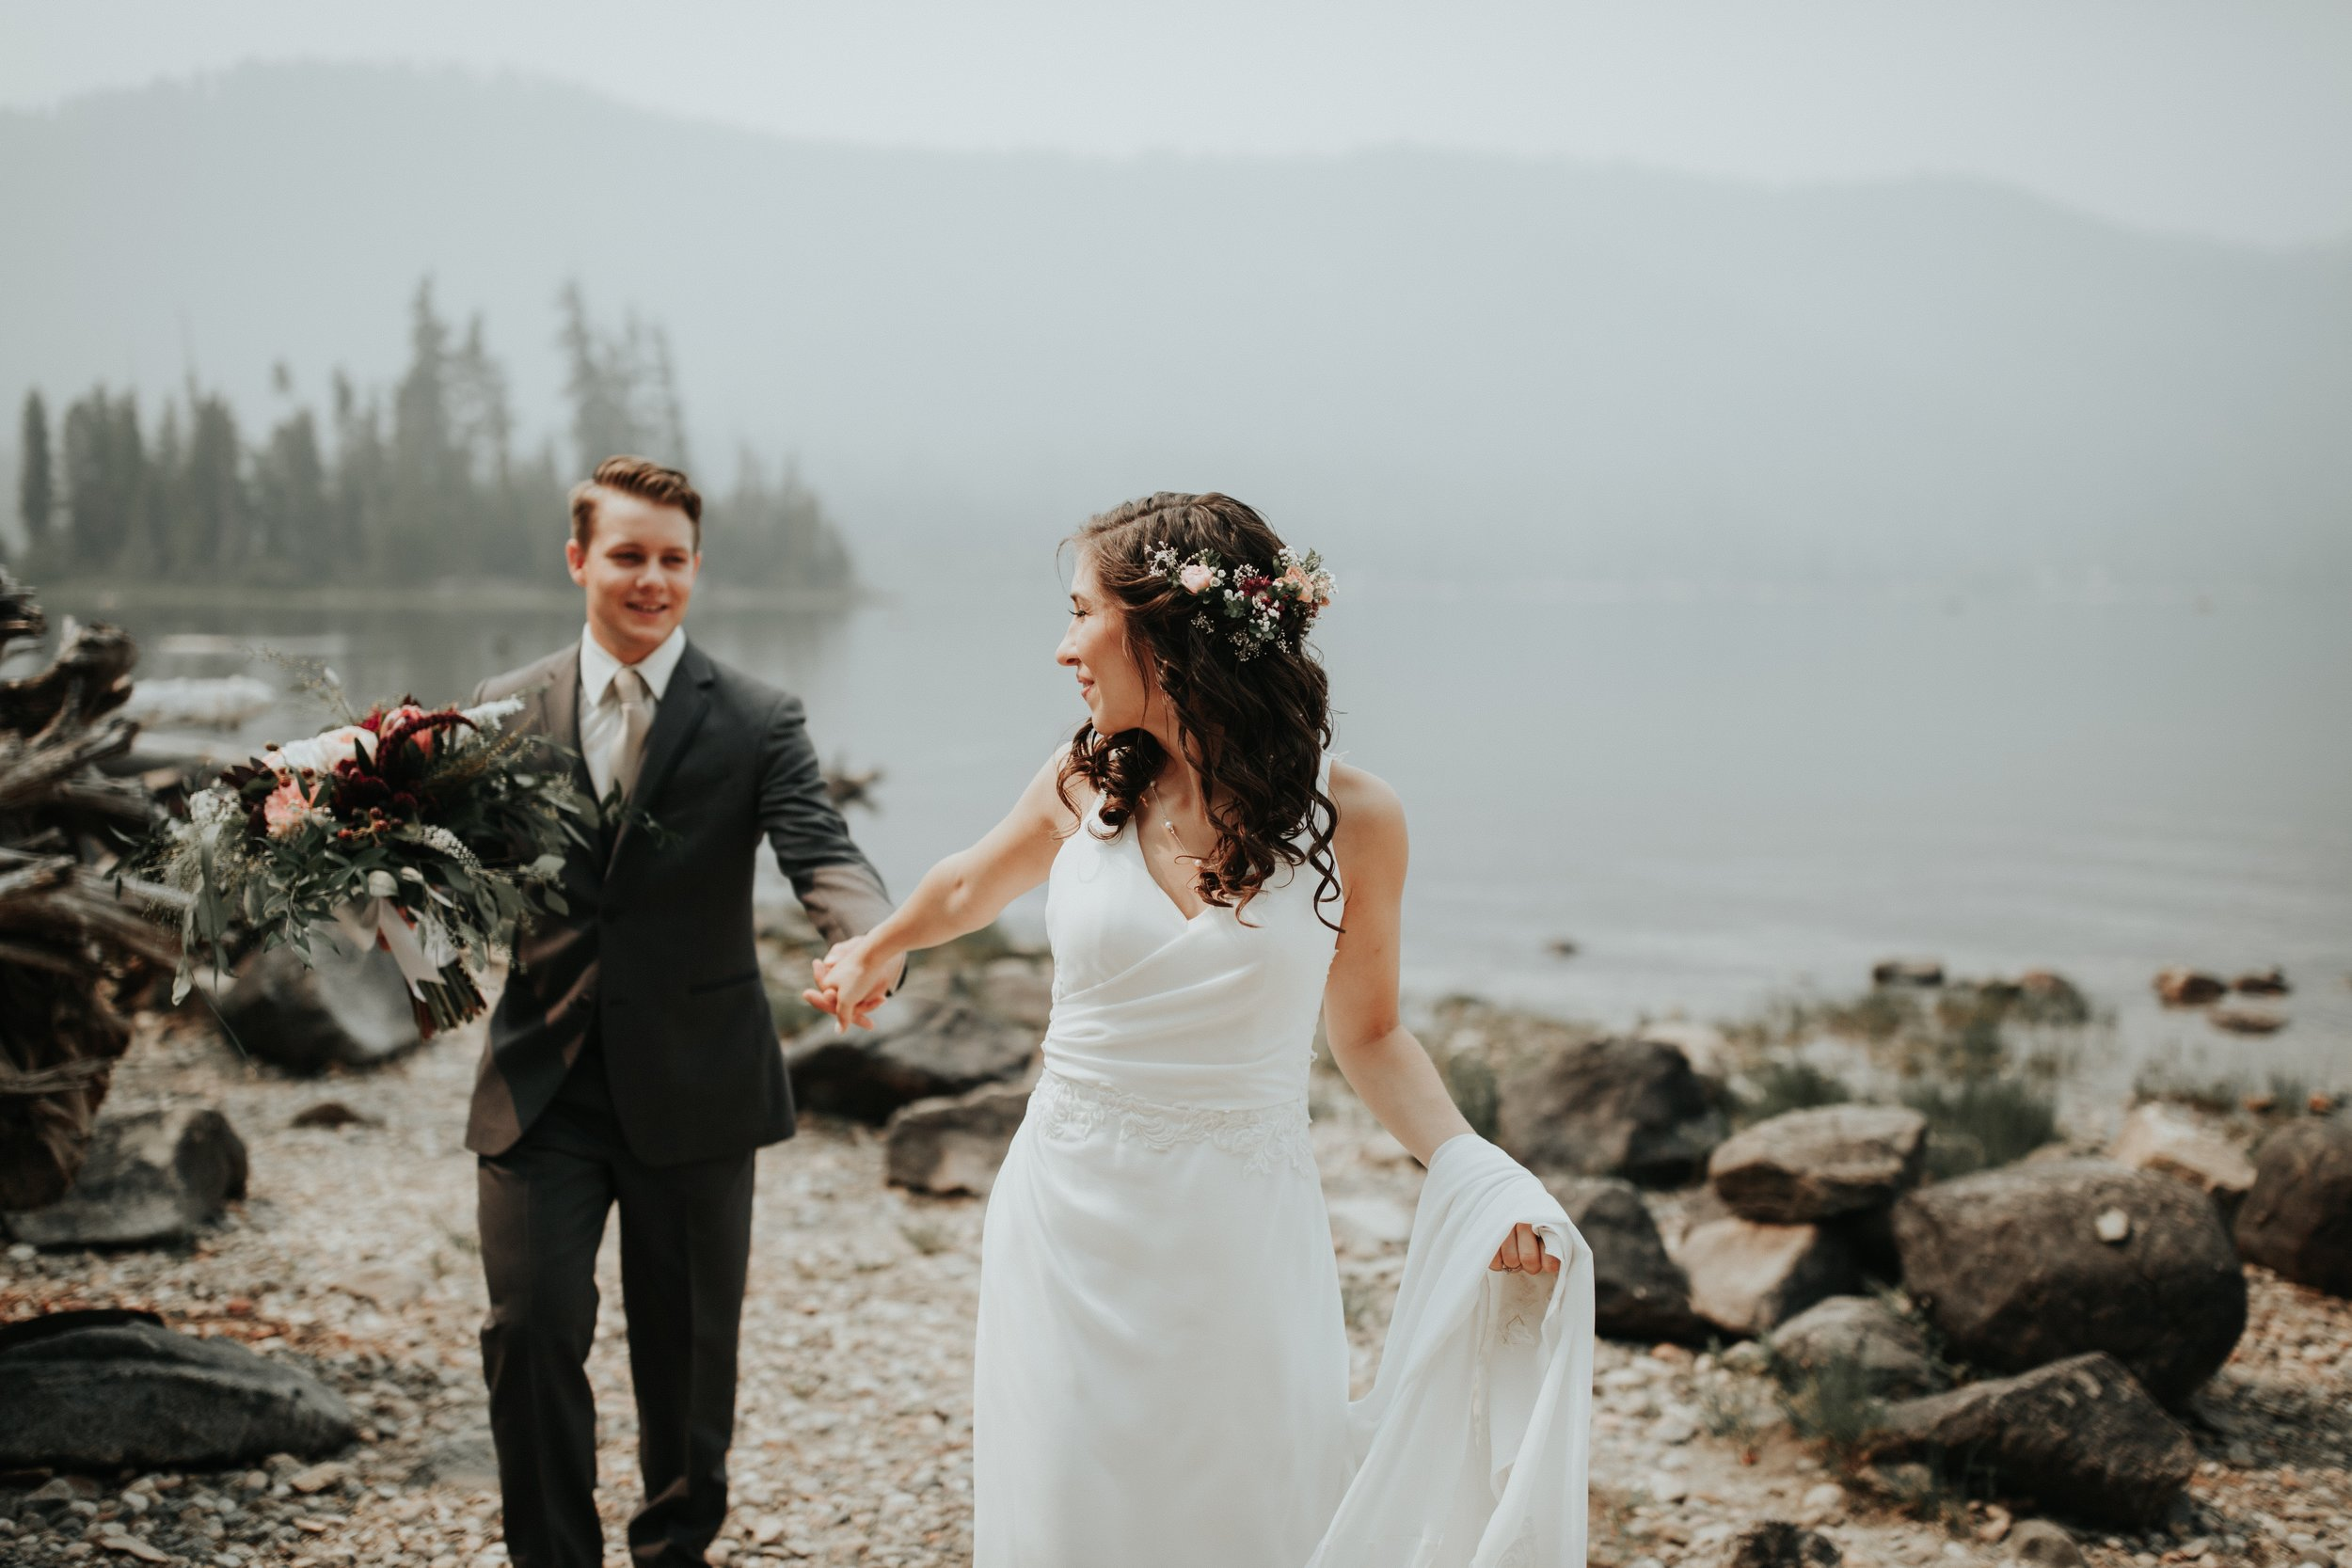 Lake-Wedding-Andrew-Roby-Events.jpeg